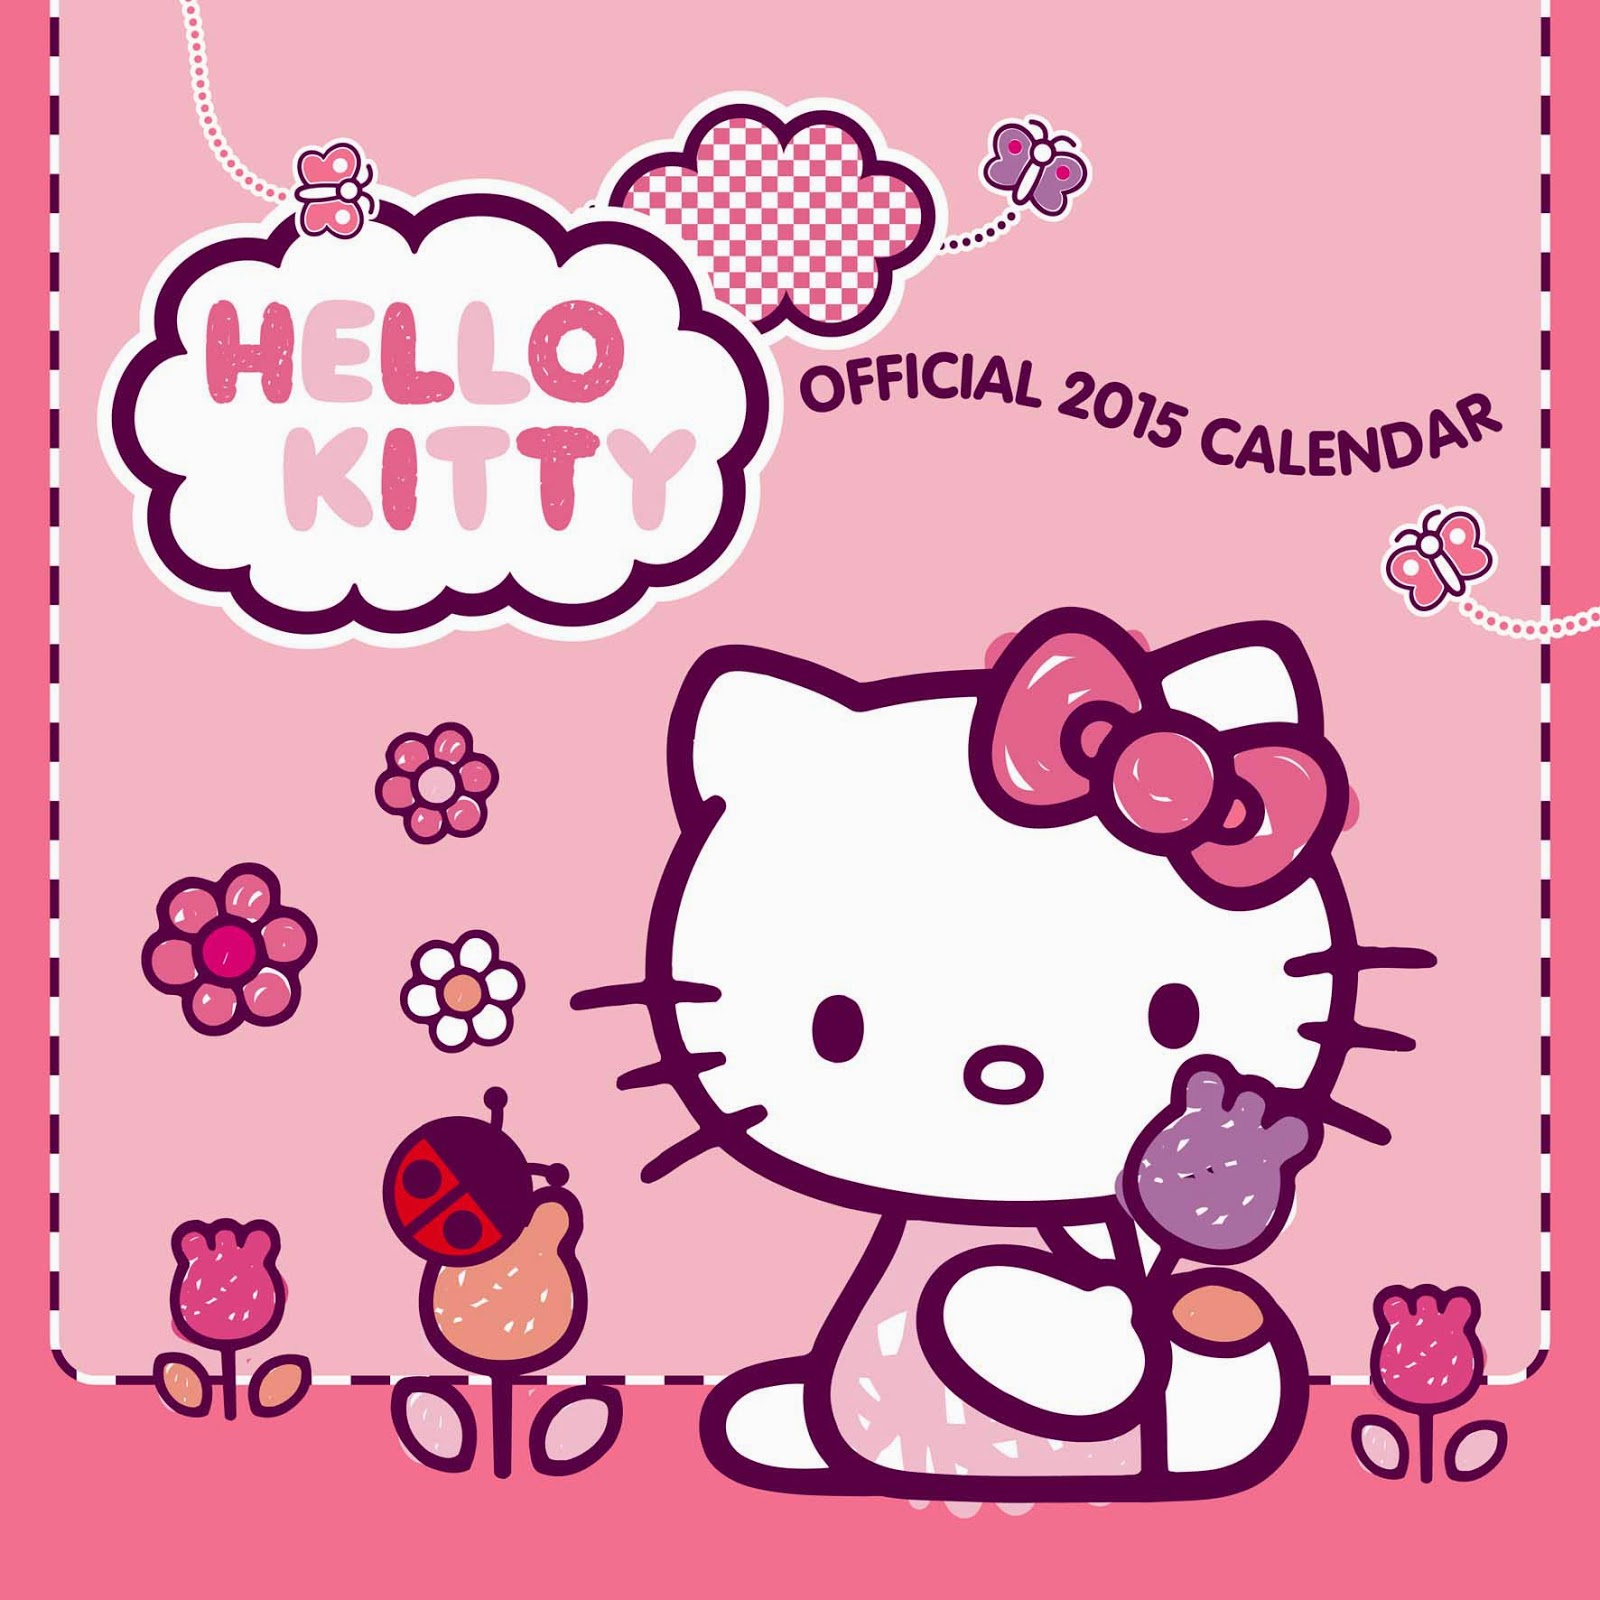 48 ] Wallpaper Hello Kitty 2015 On WallpaperSafari